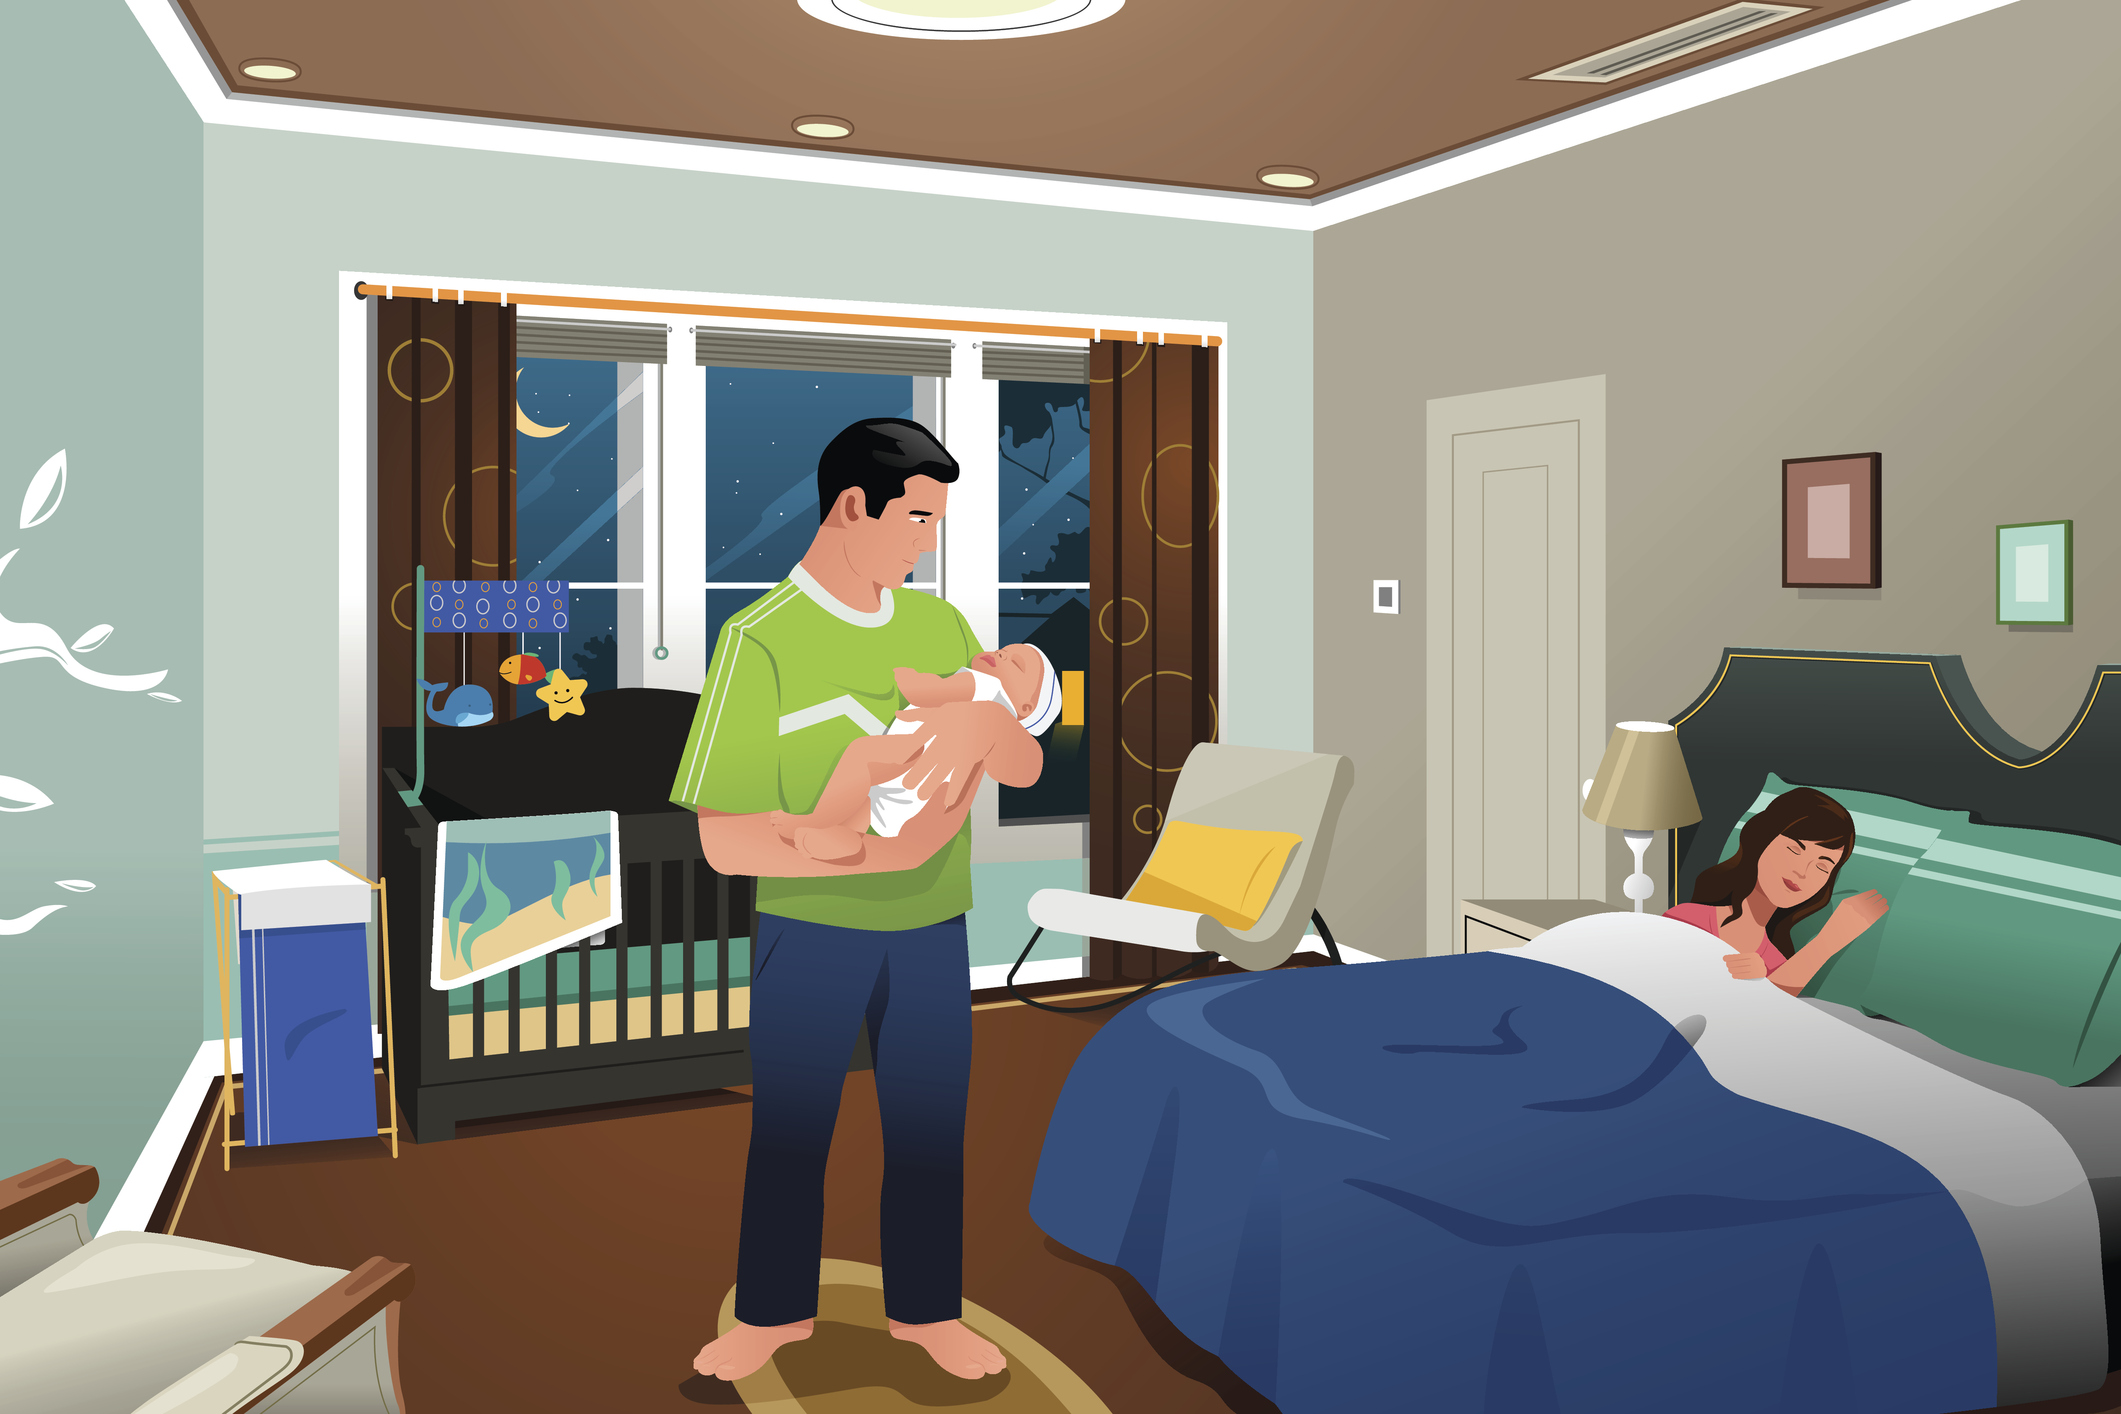 Room Sharing With Your Baby May Help Prevent Sids But It Means Everyone Gets Less Sleep Harvard Health Blog Harvard Health Publishing